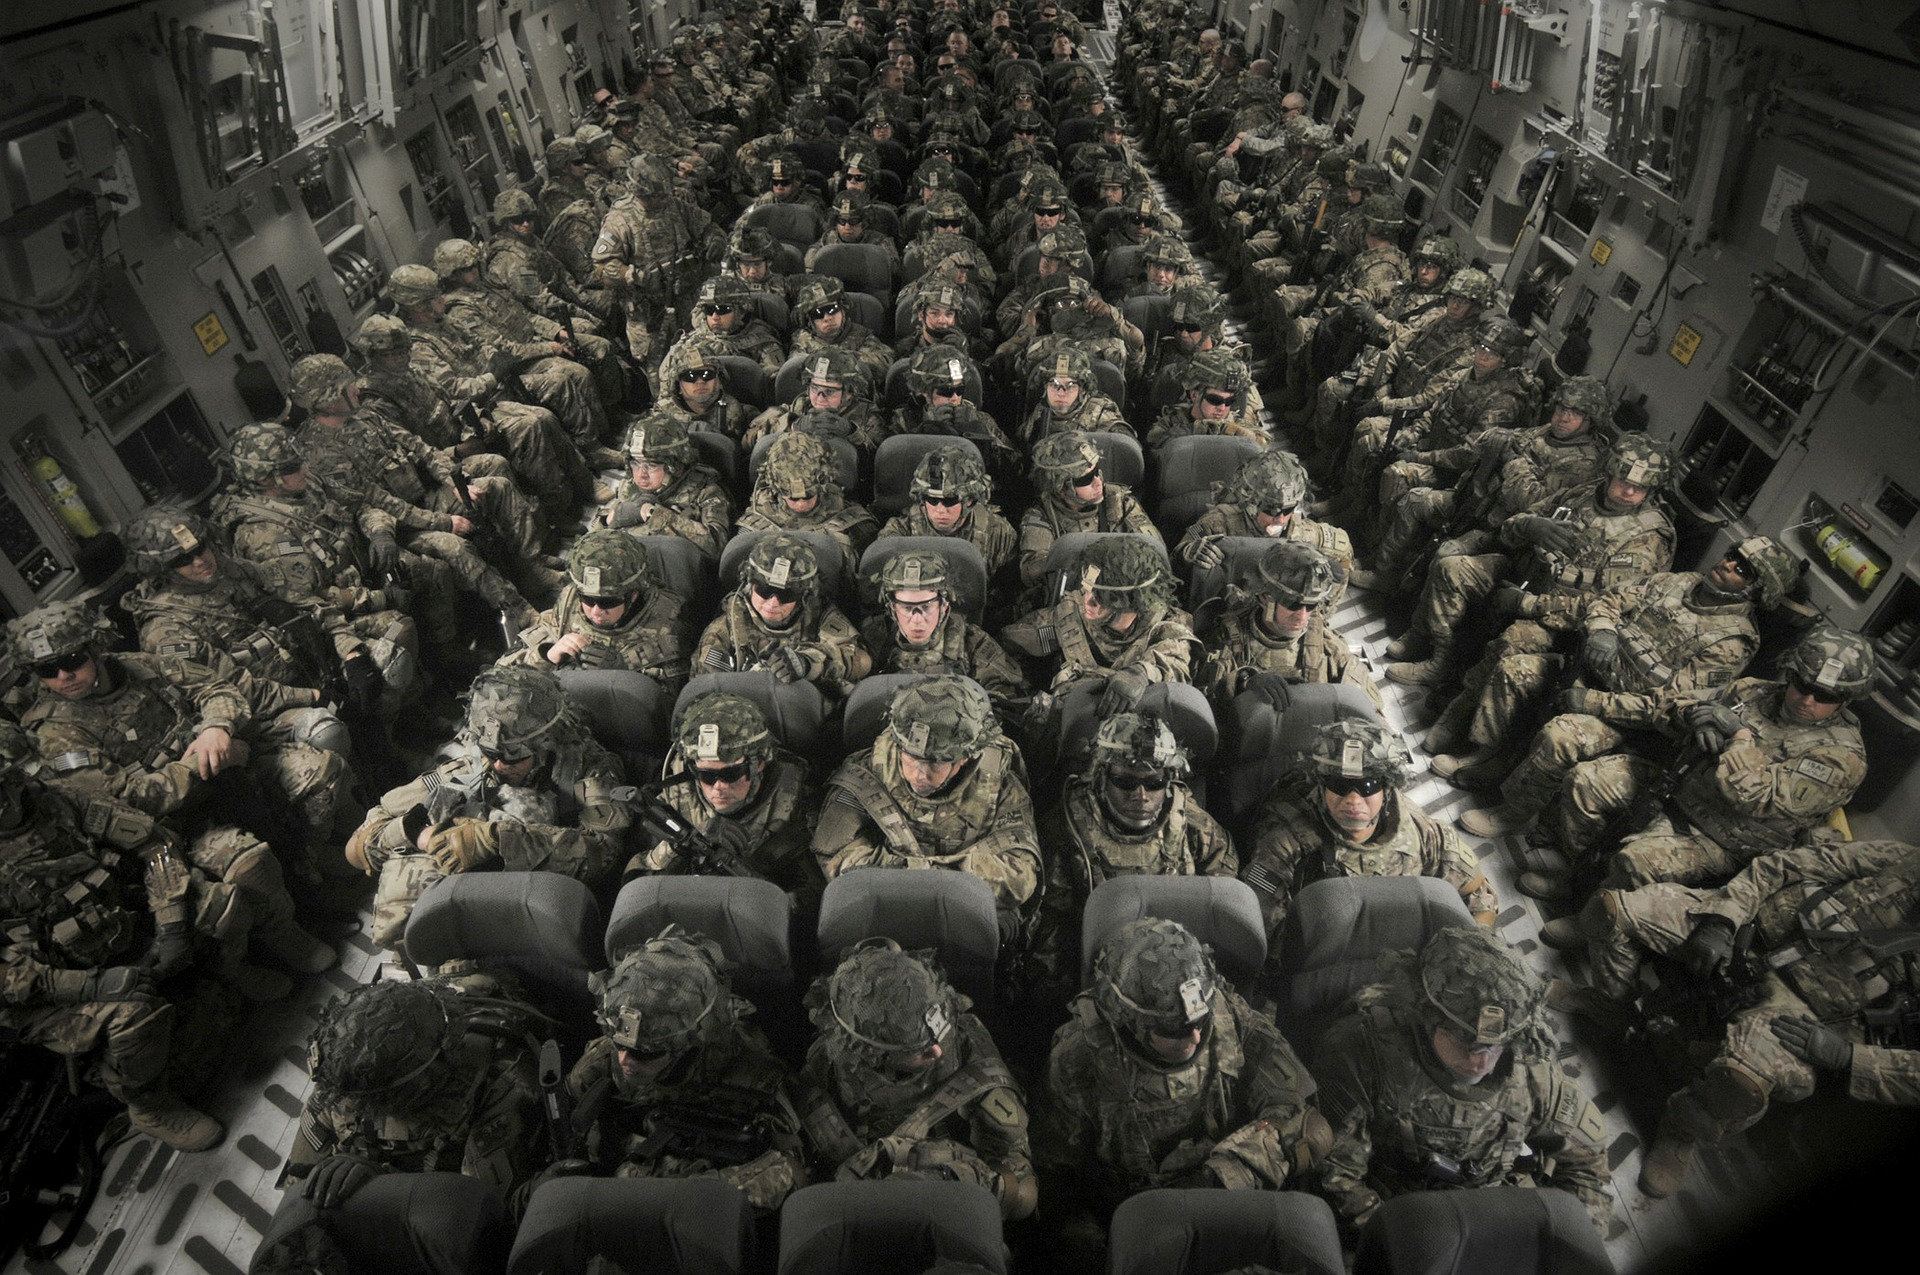 soliders sitting in transport